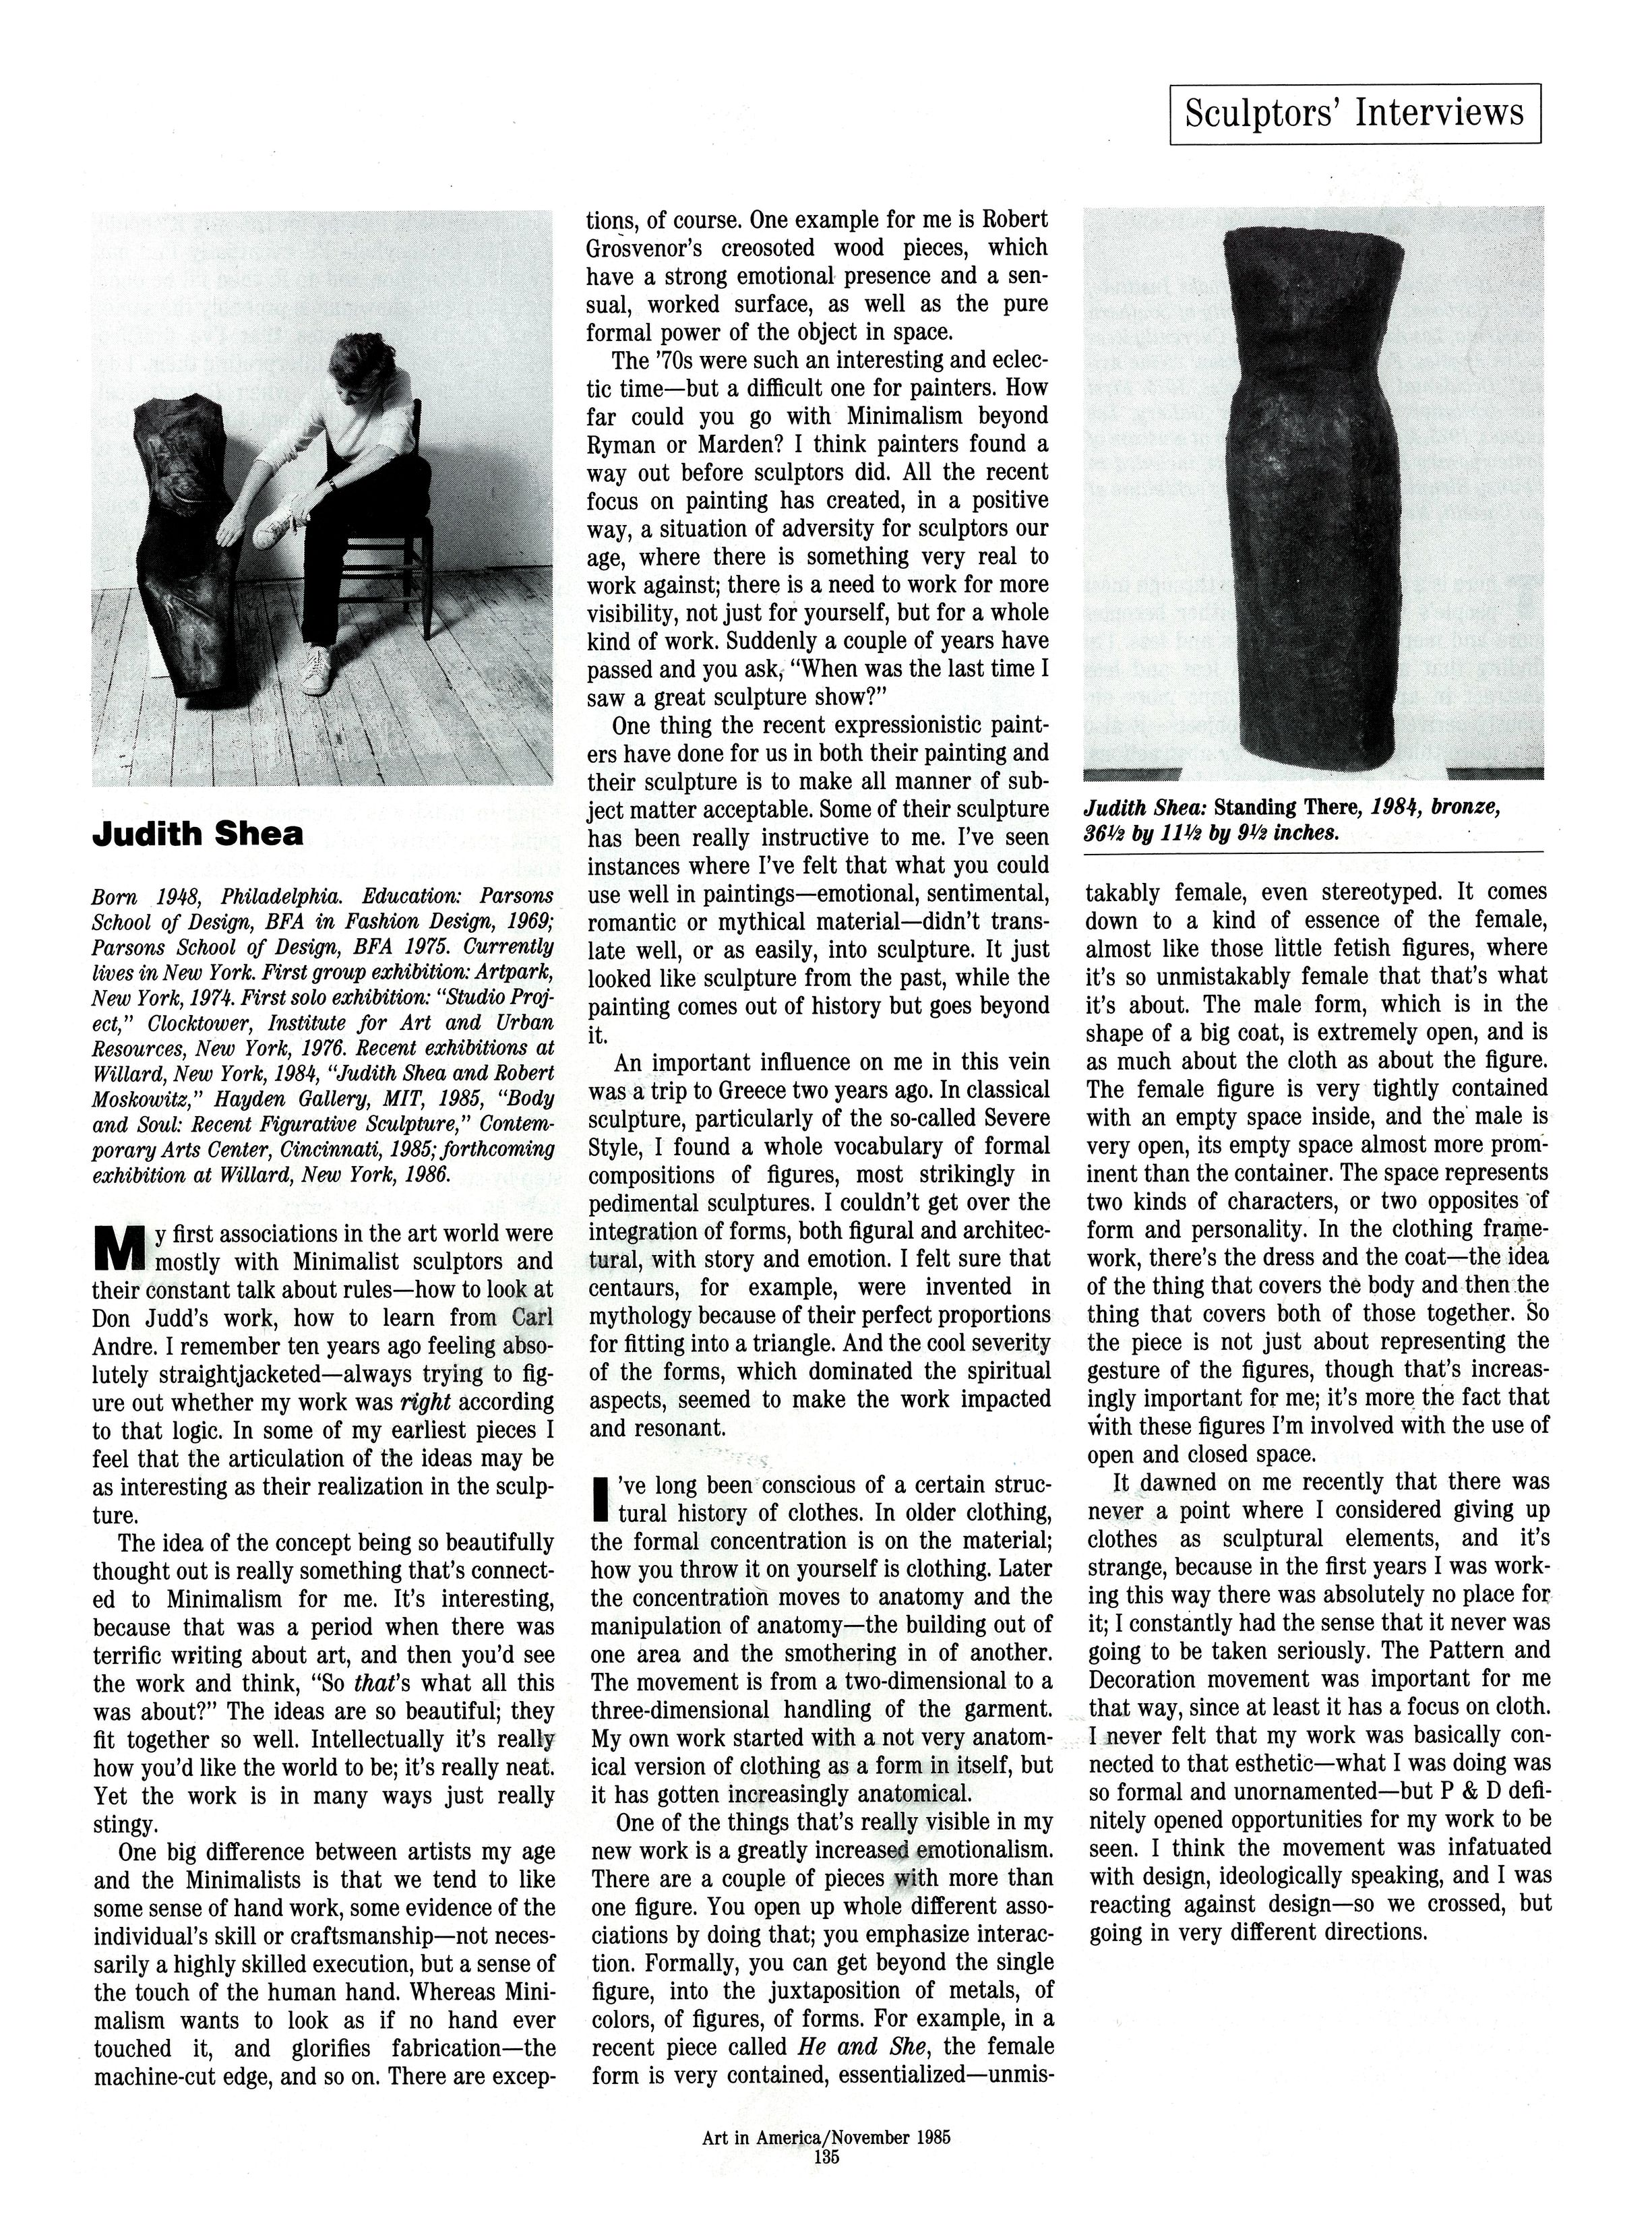 art_in_america_1985_talking_objects_page135